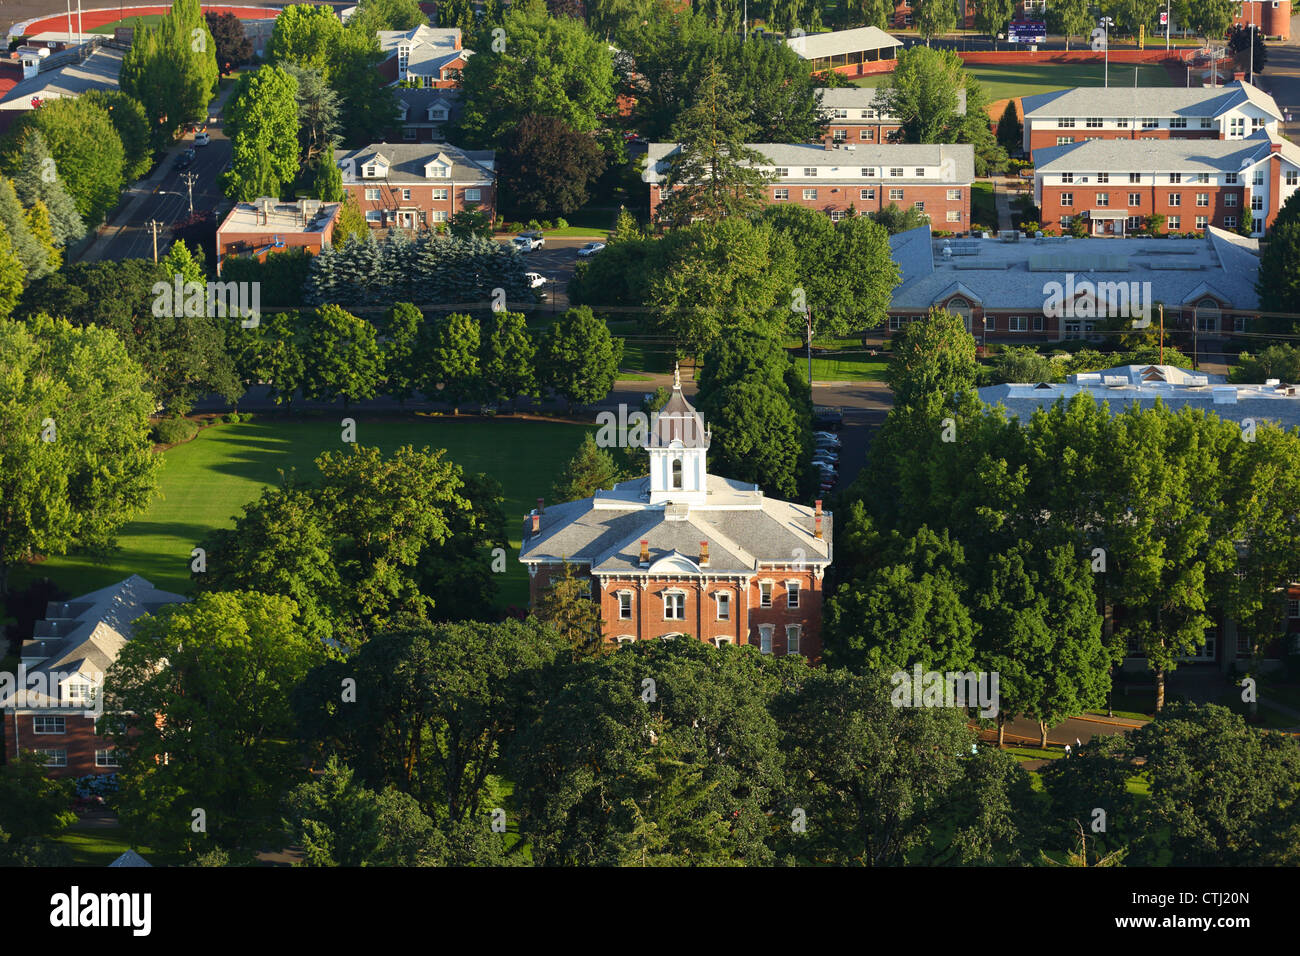 Aerial view of Linfield College Campus, McMinnville, OR - Stock Image